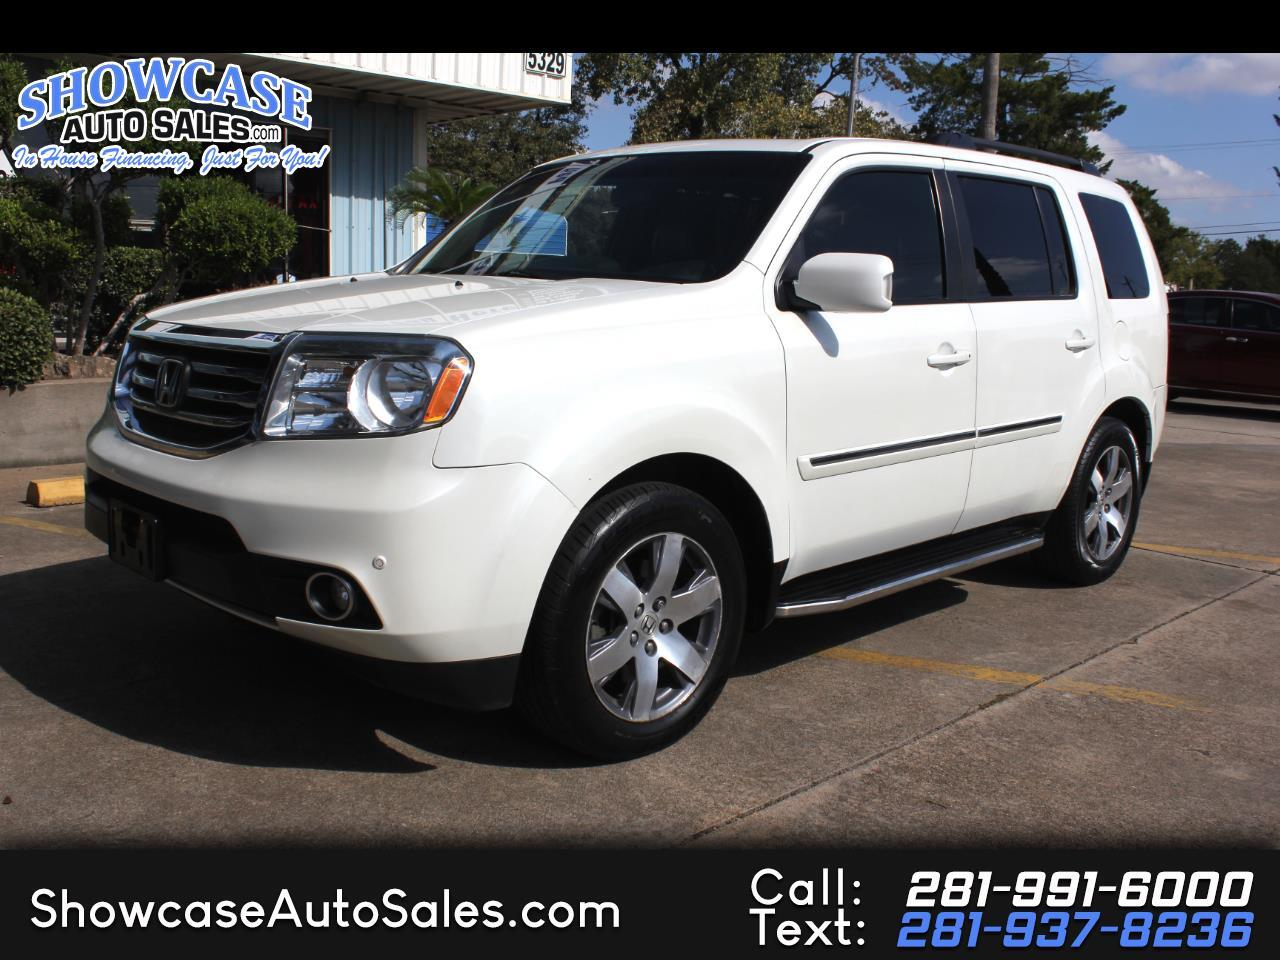 Honda Pilot Touring 2WD 5-Spd AT with DVD 2015